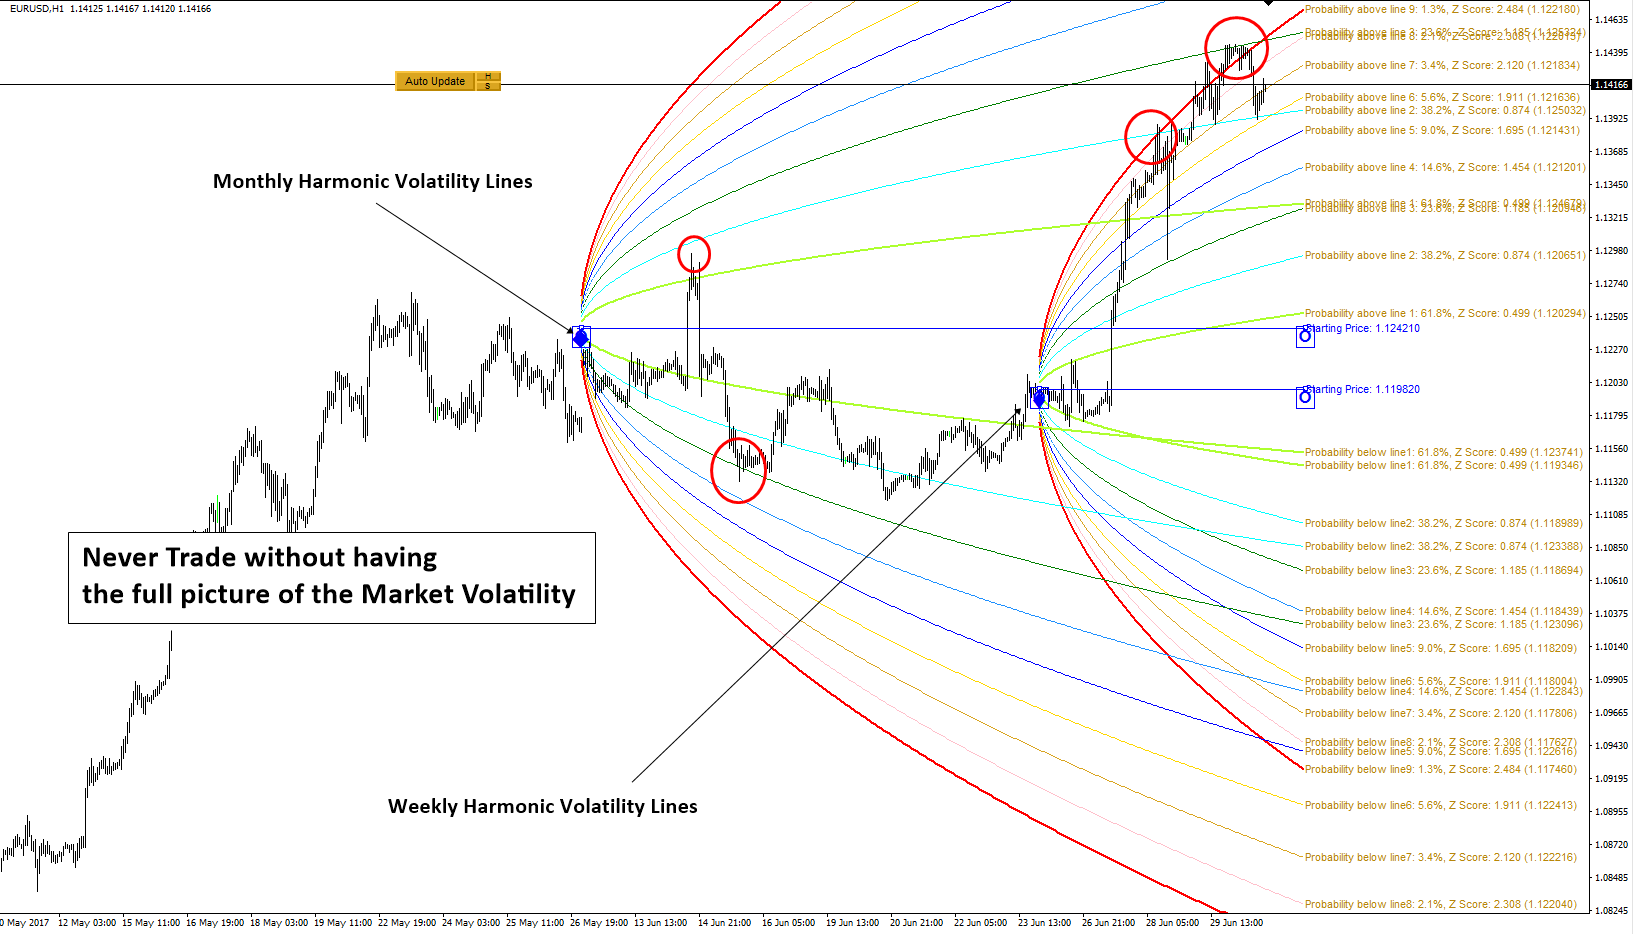 Double Harmonic Volatility Indicator for MT5 been released on MQL5